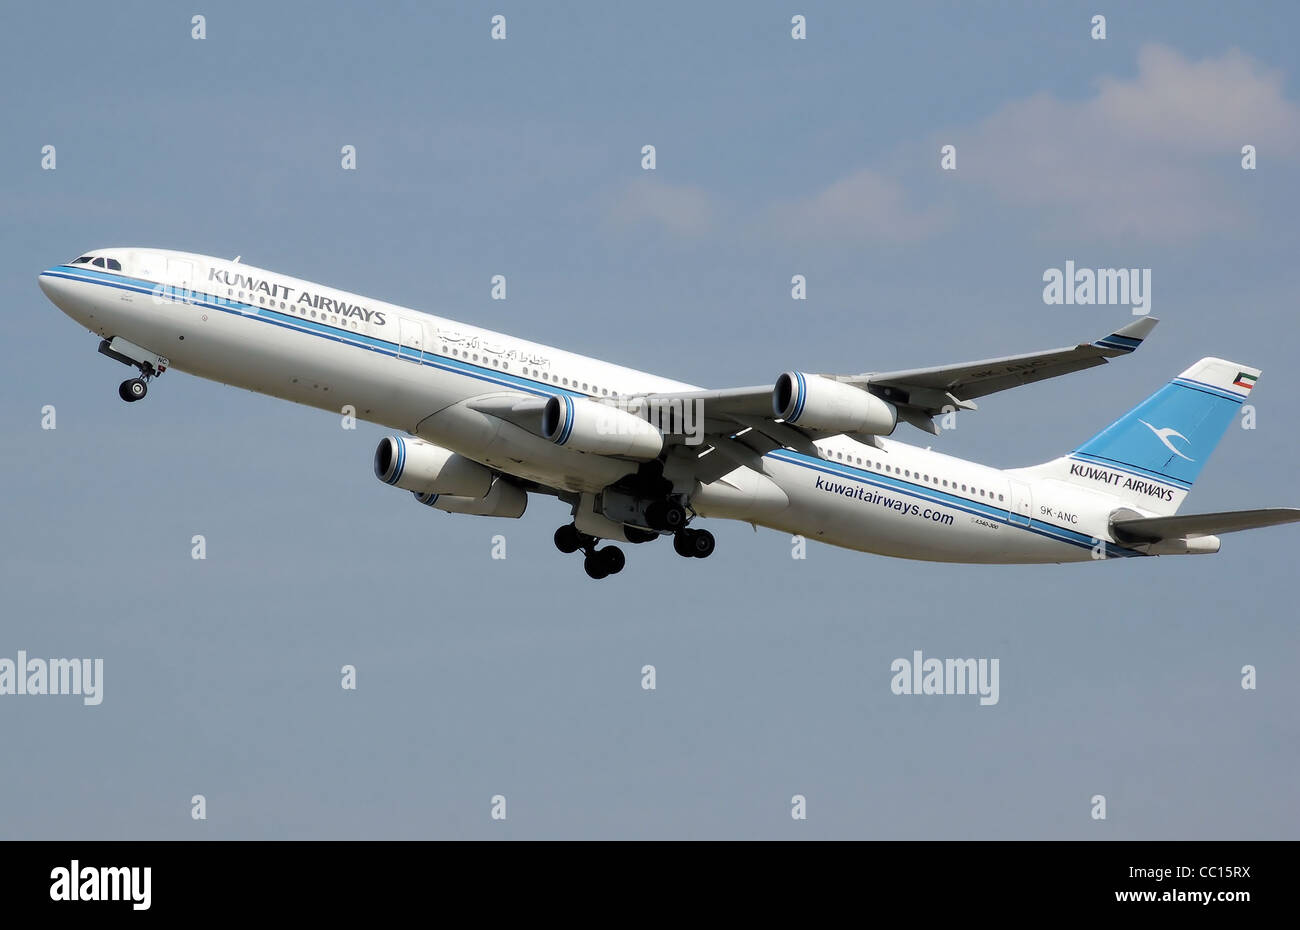 Kuwait Airways Airbus A340-300 (9K-ANC) takes off from London Heathrow Airport - Stock Image